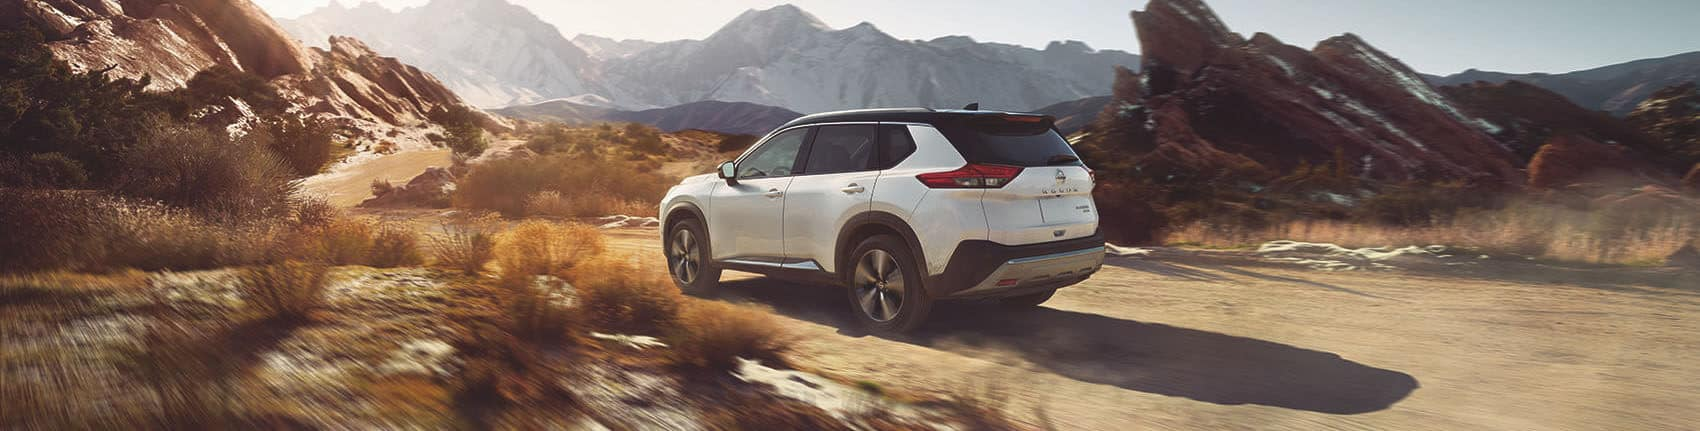 Nissan SUV Reviews